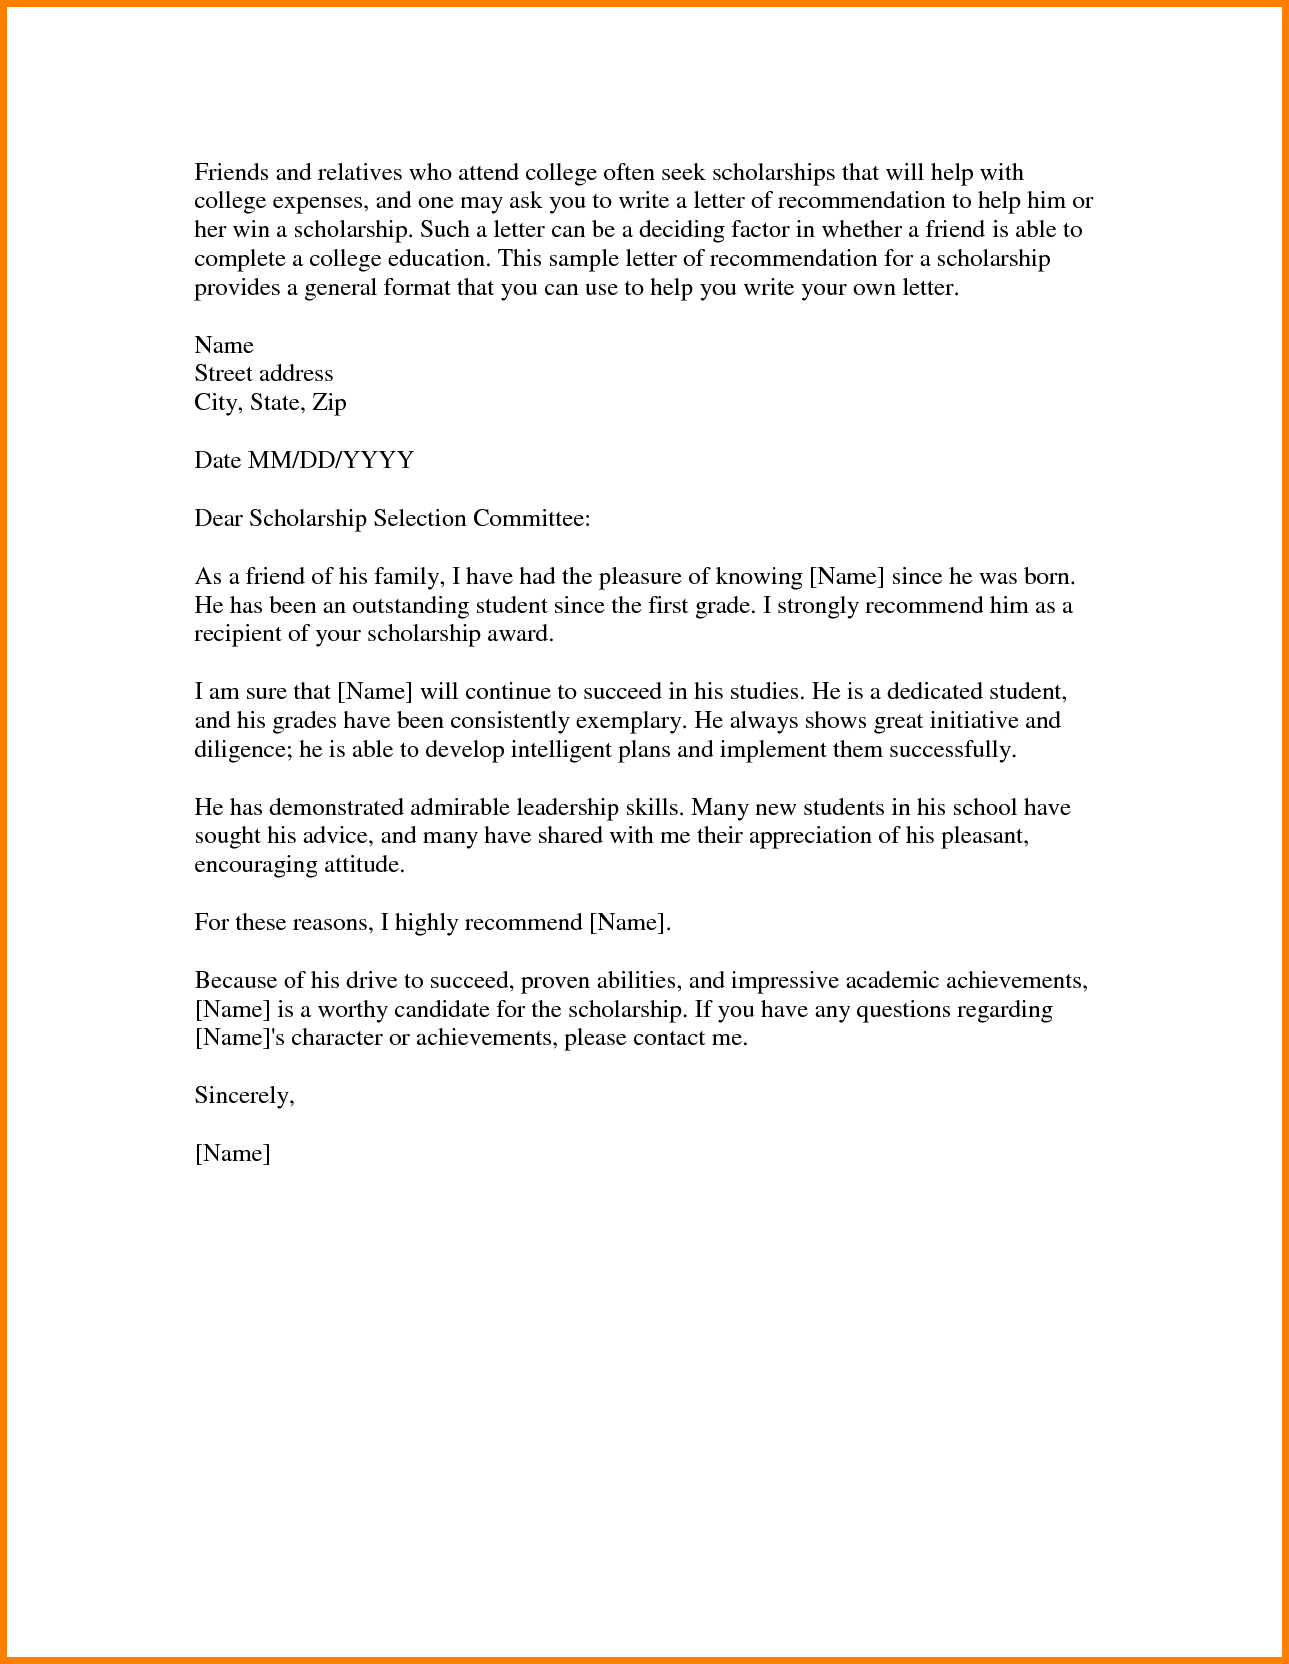 Scholarship reference letter template examples letter templates scholarship reference letter template scholarship reference letter format gallery letter format formal thecheapjerseys Gallery